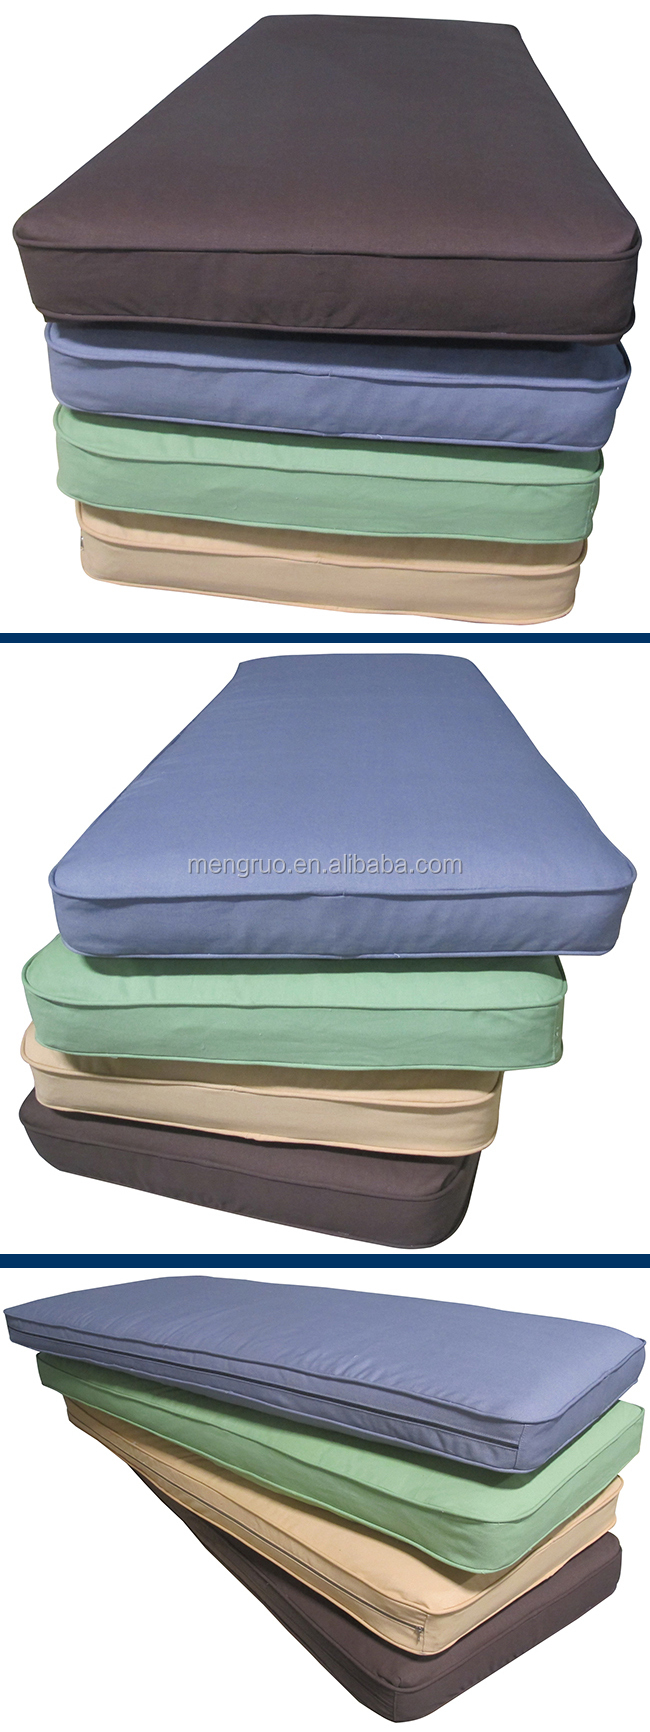 Wholesale Hot Twin Size Sponge Foam Sofa Bed Mattress Buy Sofa Bed Mattress Sponge Foam Sofa